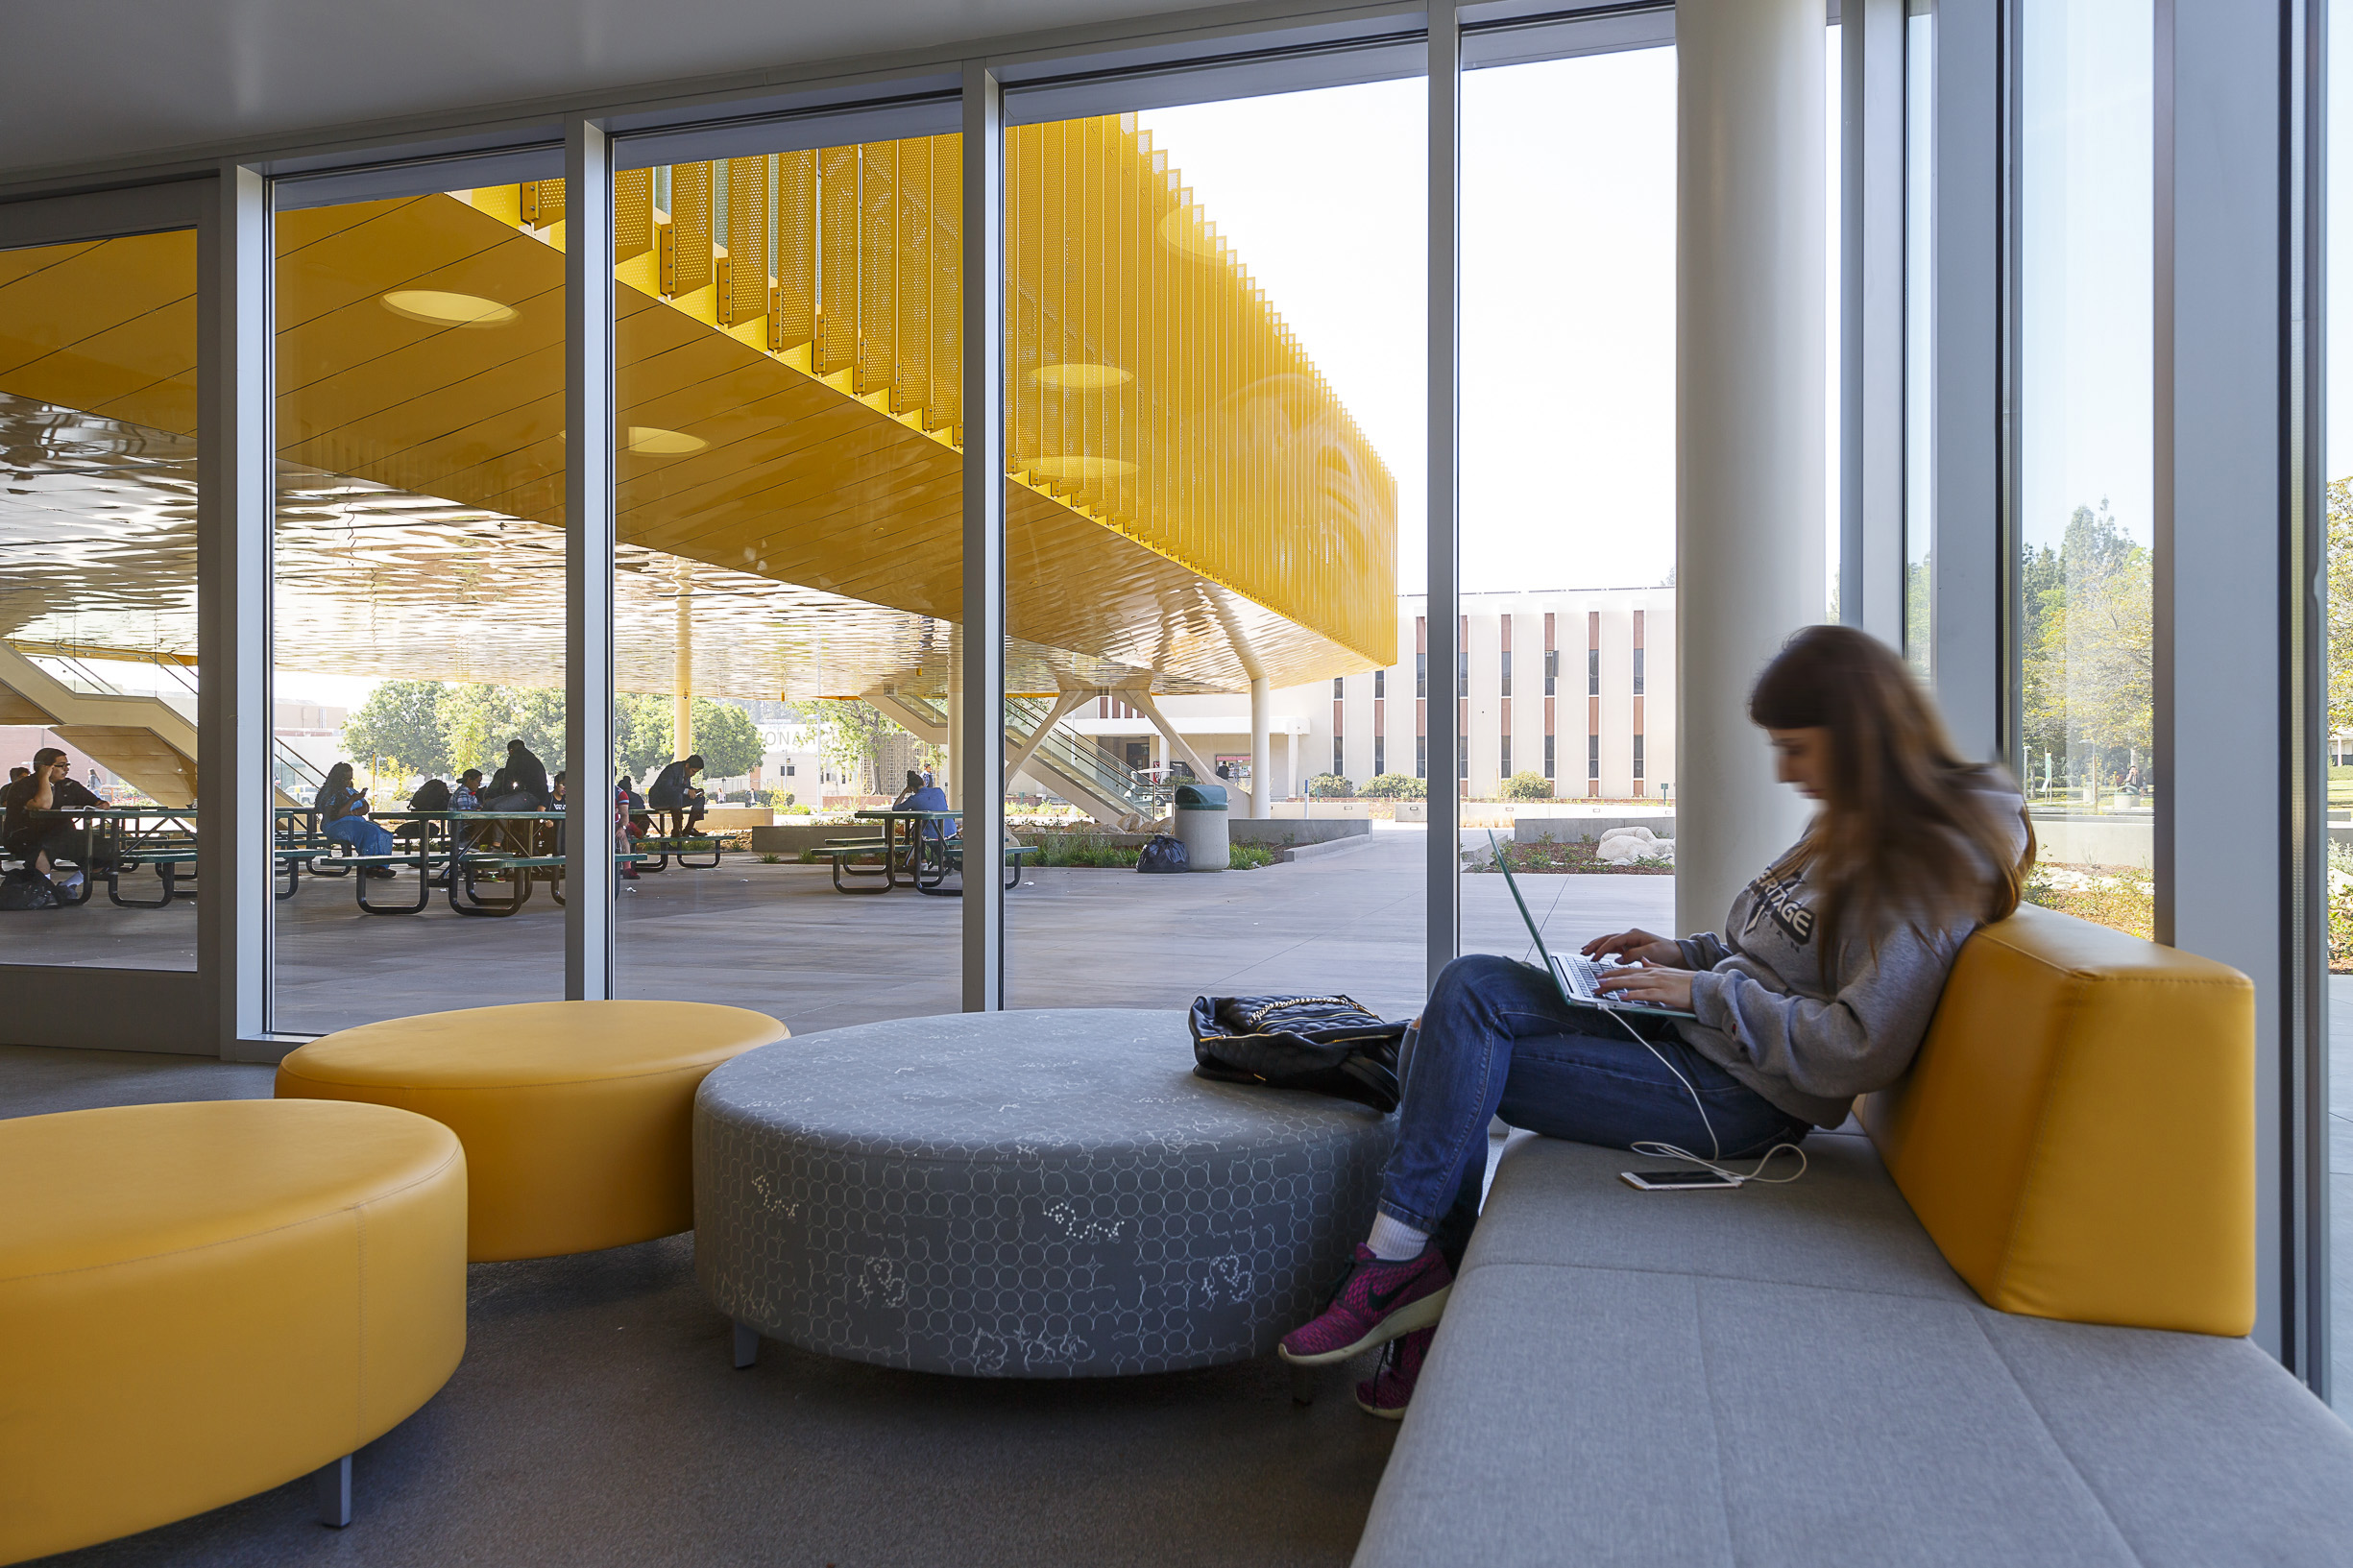 Los angeles valley college completes new student center - Interior design school los angeles ...